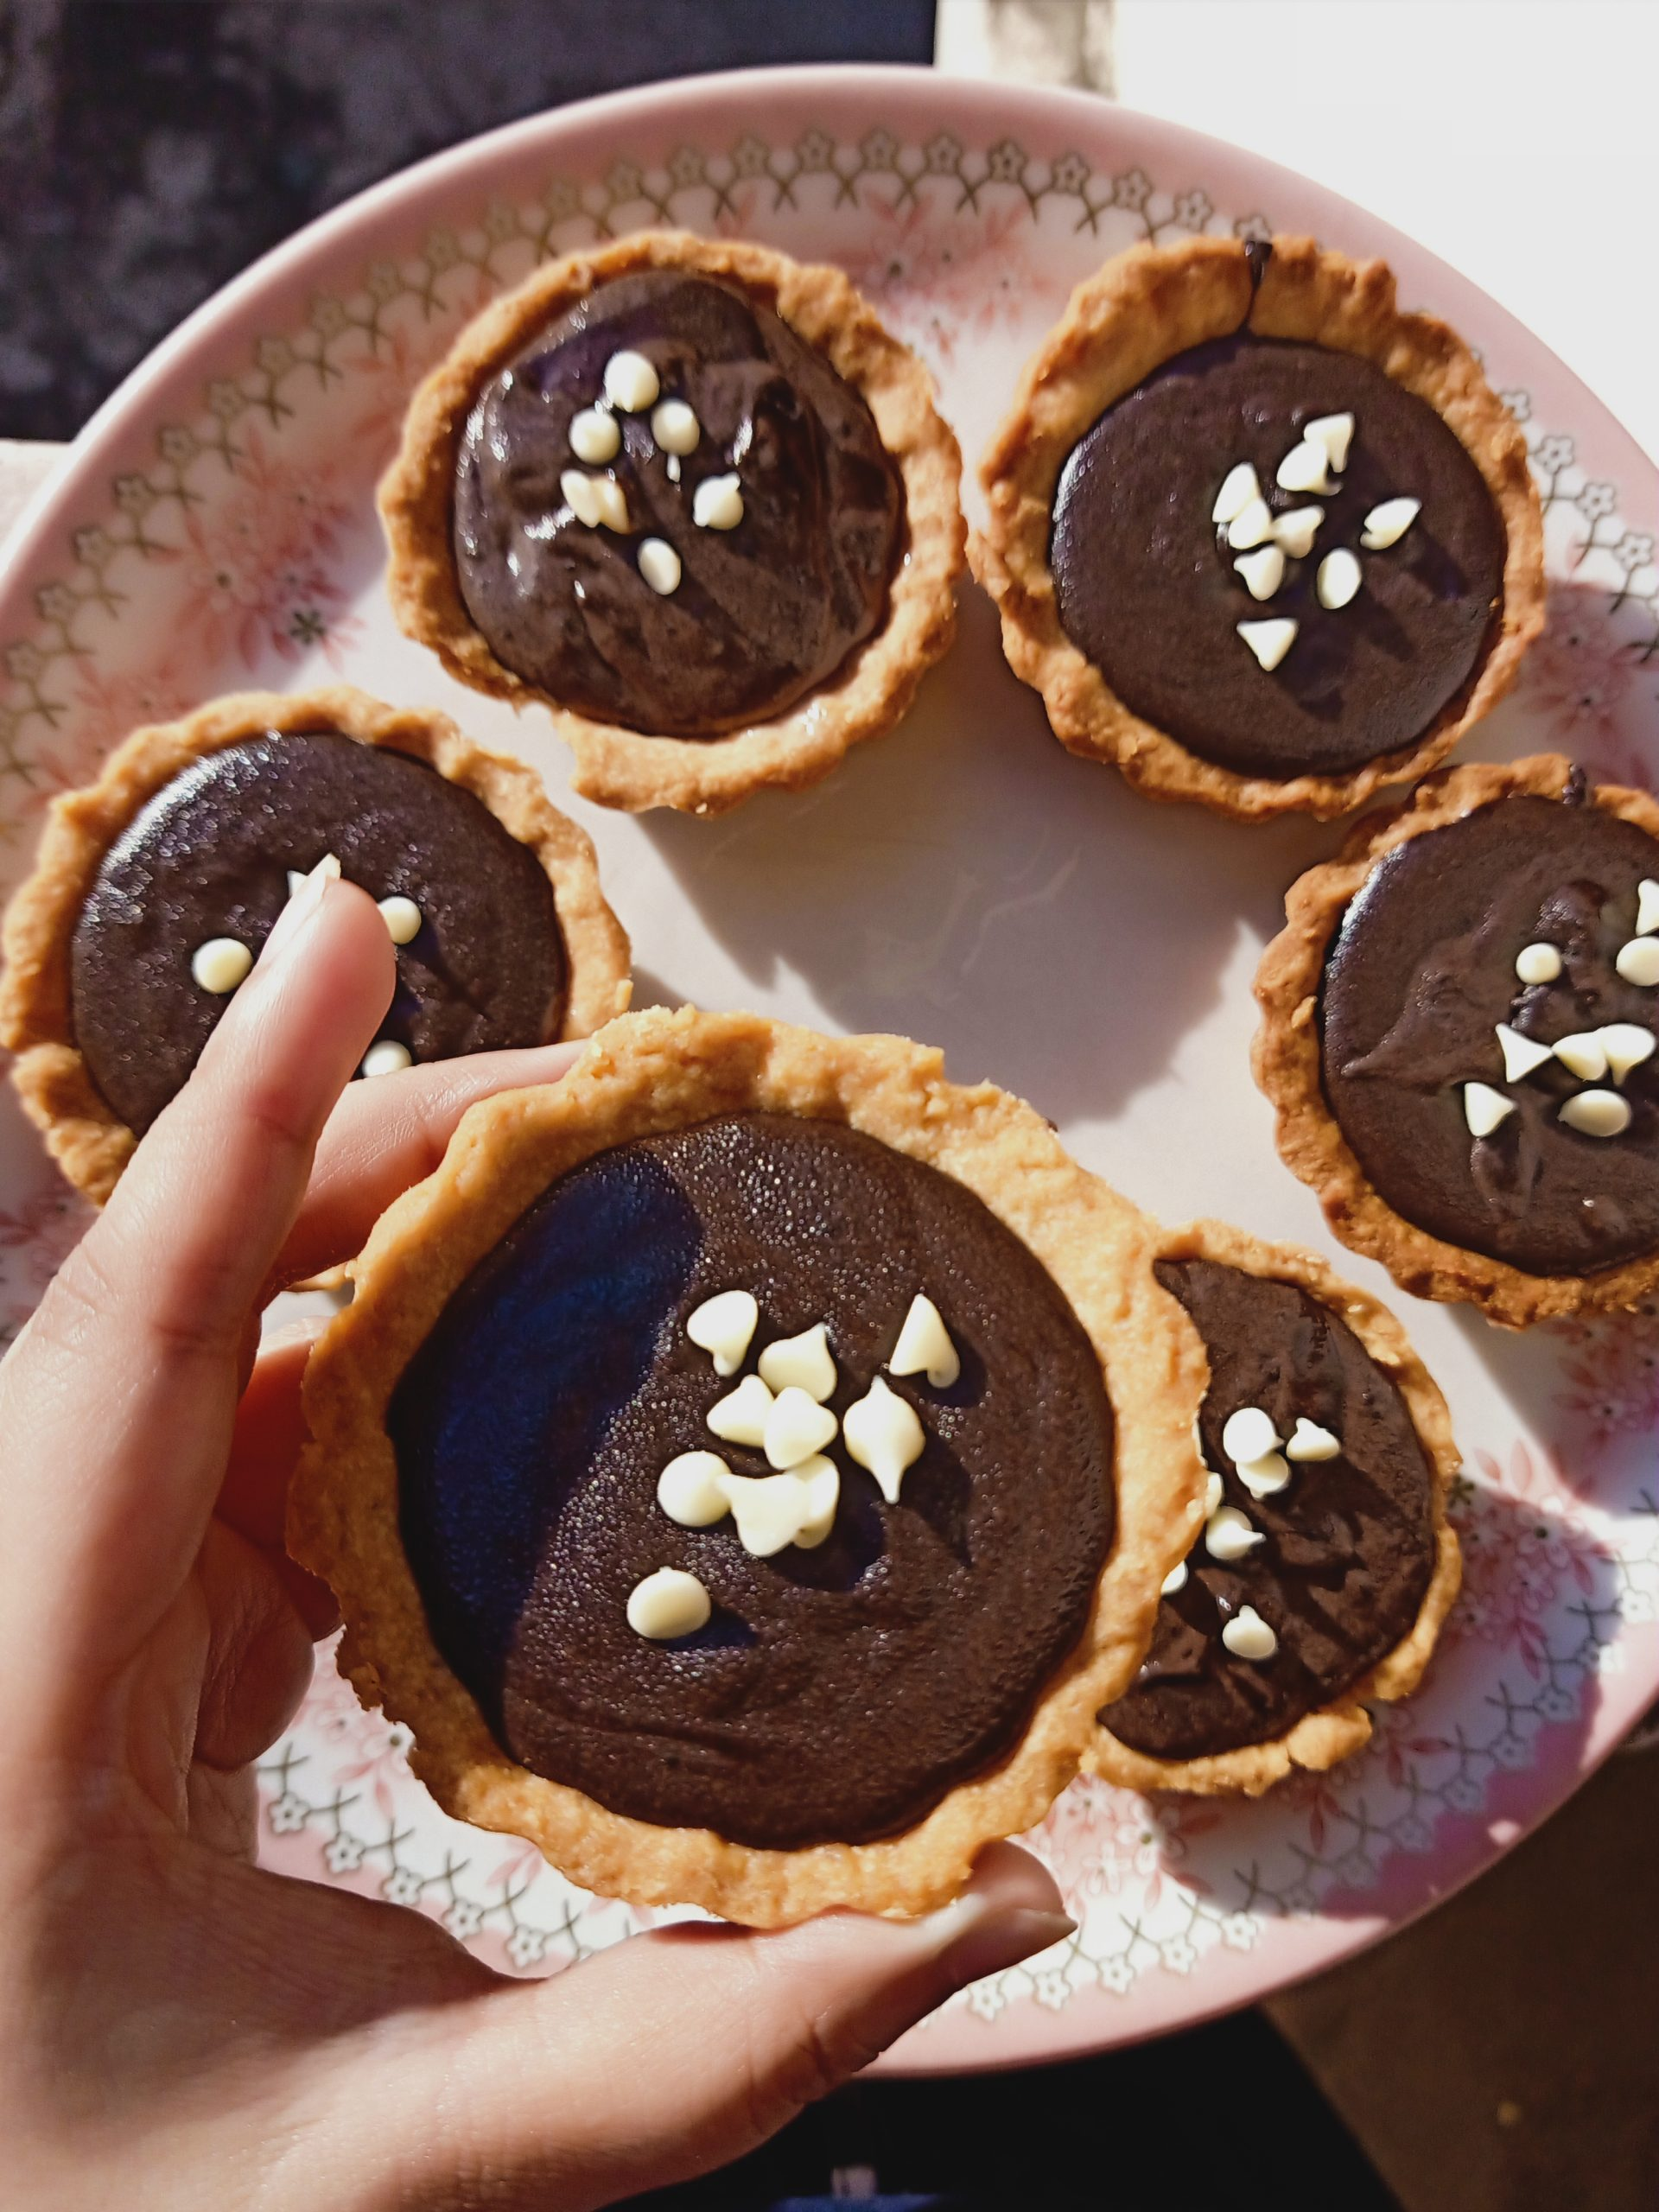 Tart with chocolate ganache!